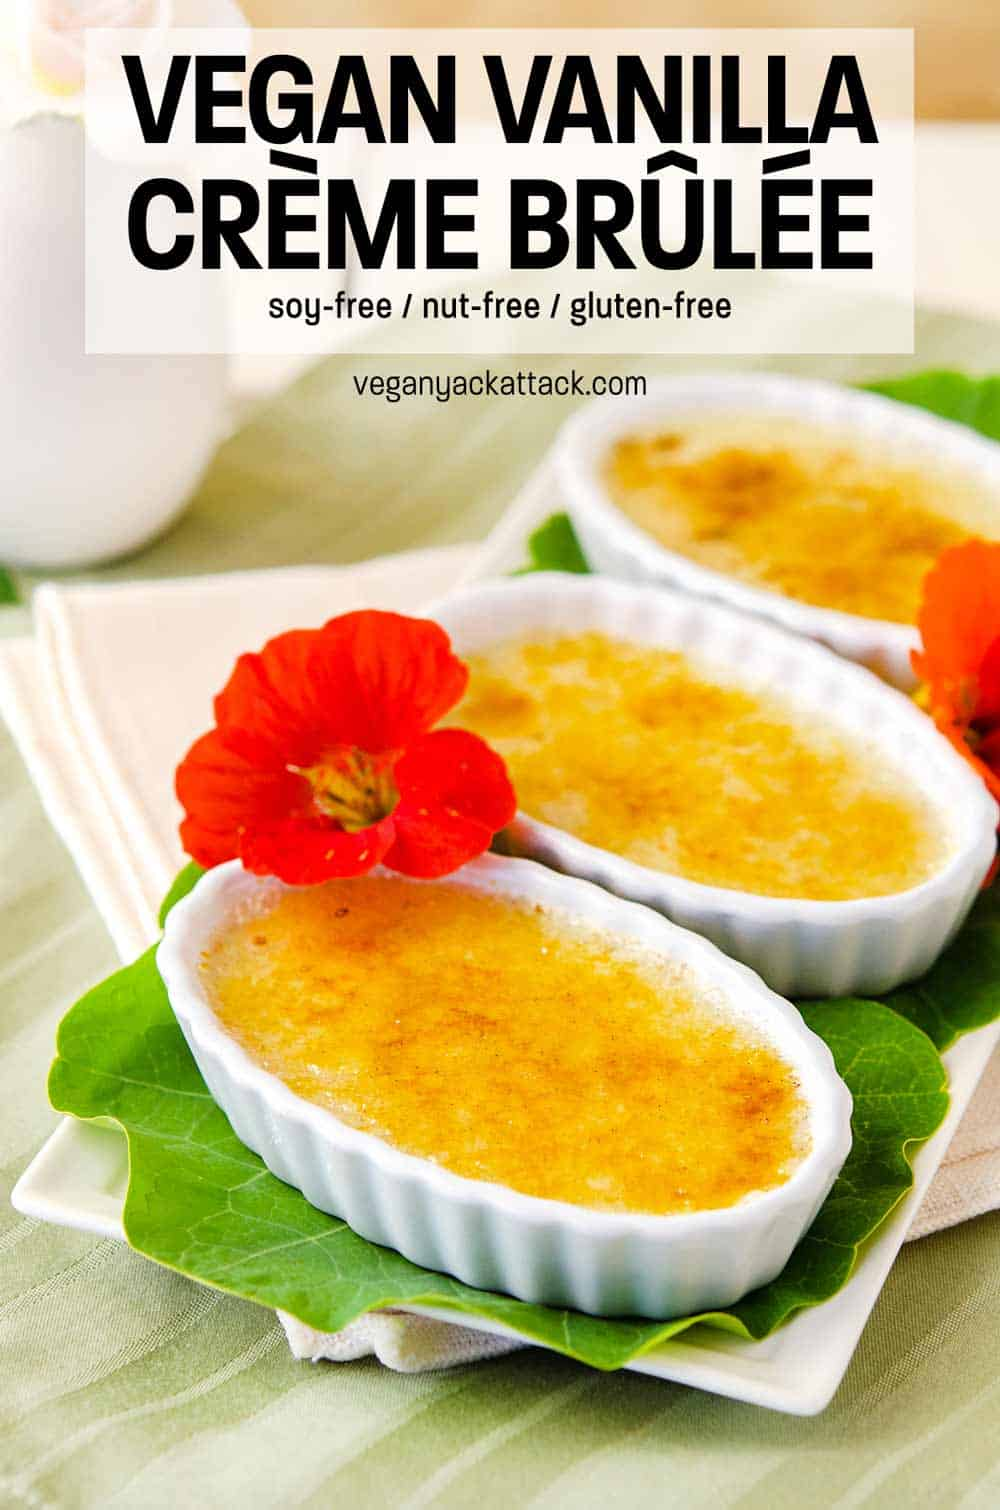 Three dishes of Vegan Vanilla Crème Brûlée on nasturtium leaves with flowers